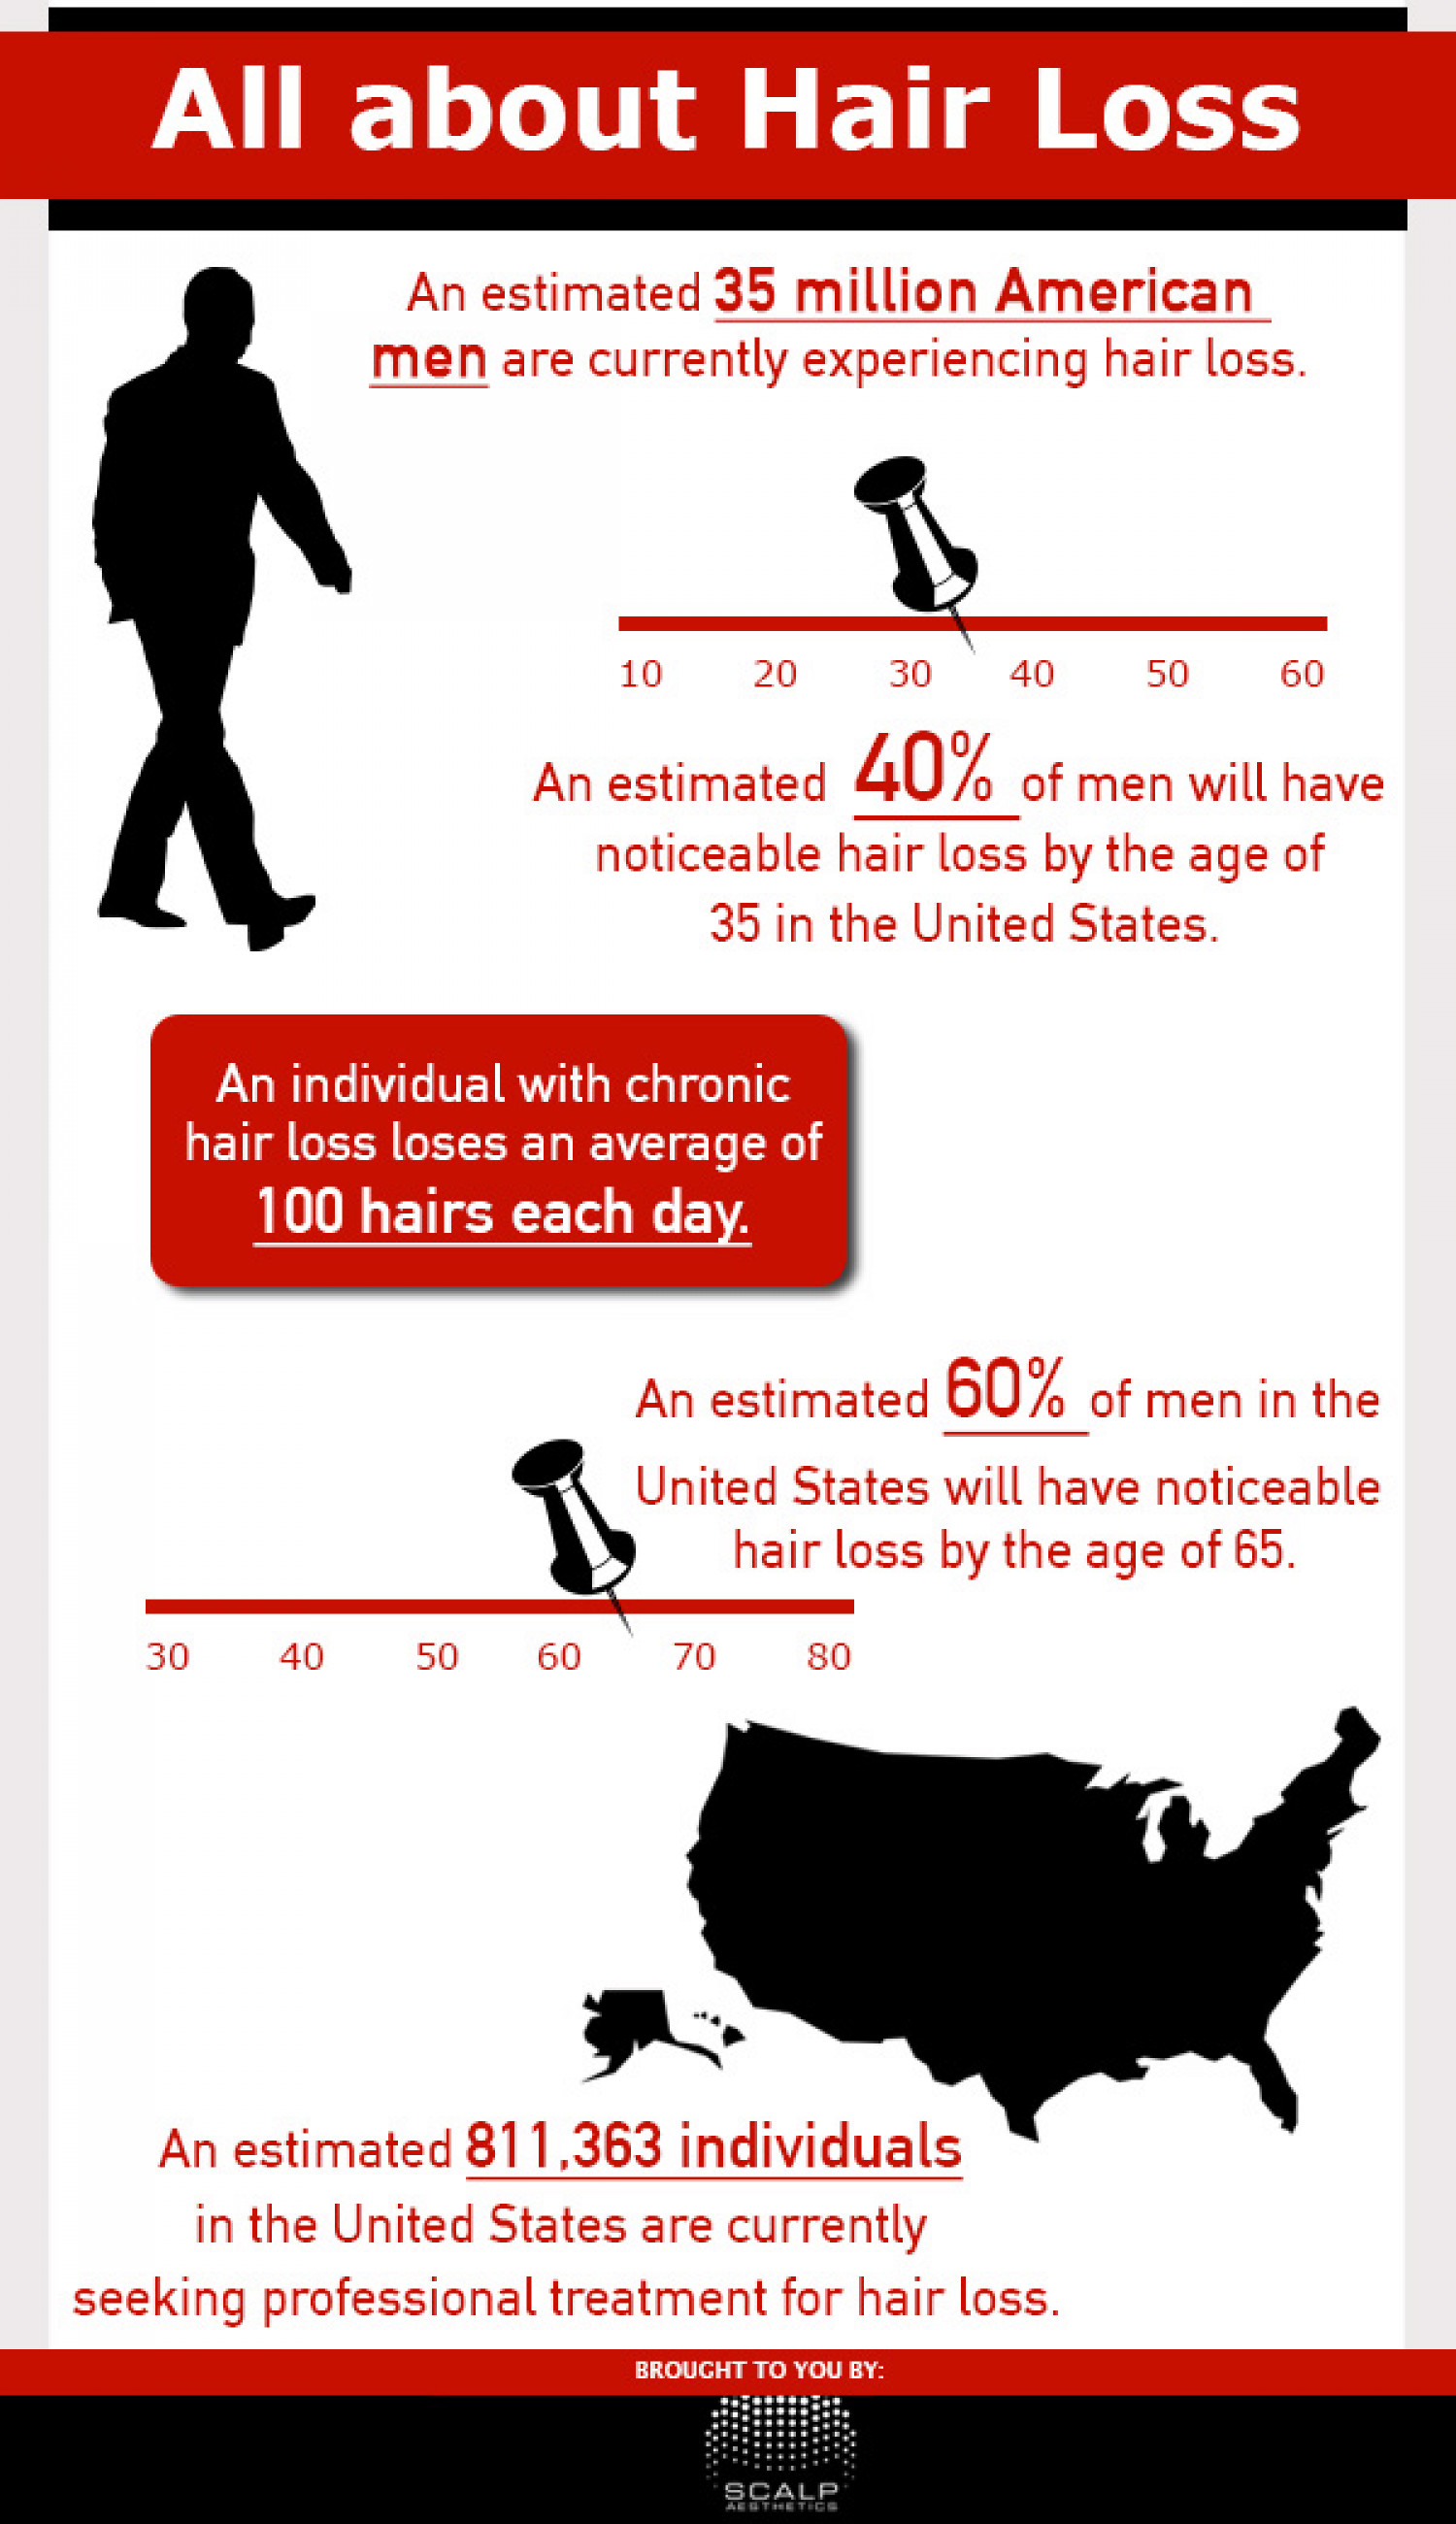 All About Hair Loss Infographic